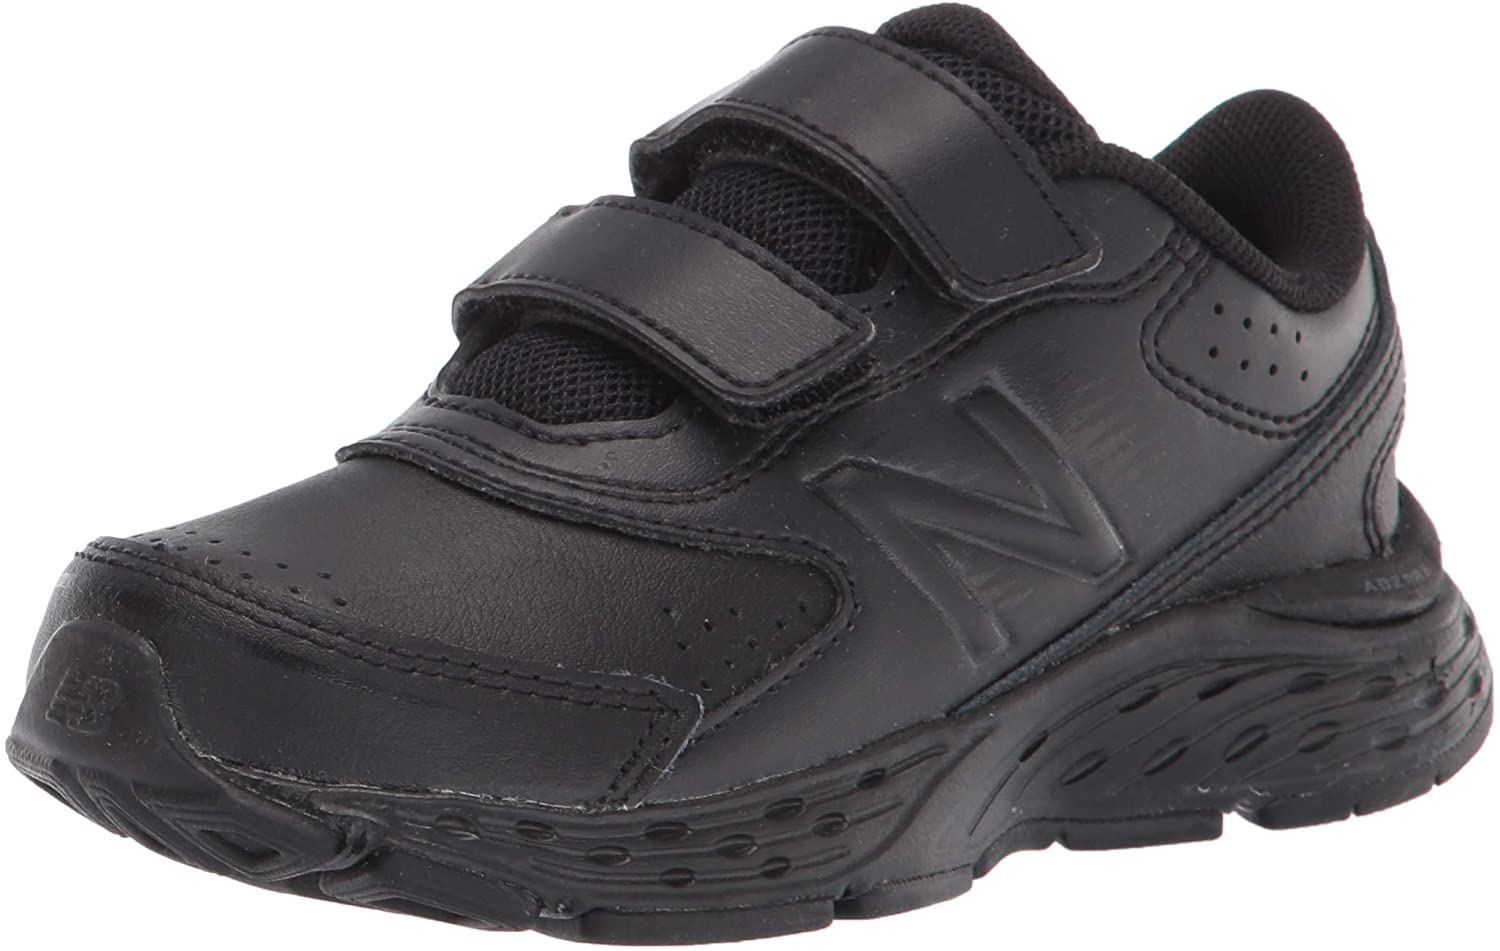 New Balance Kids' Ranking TOP4 680 V6 Running Shoe and Loop Hook 25% OFF